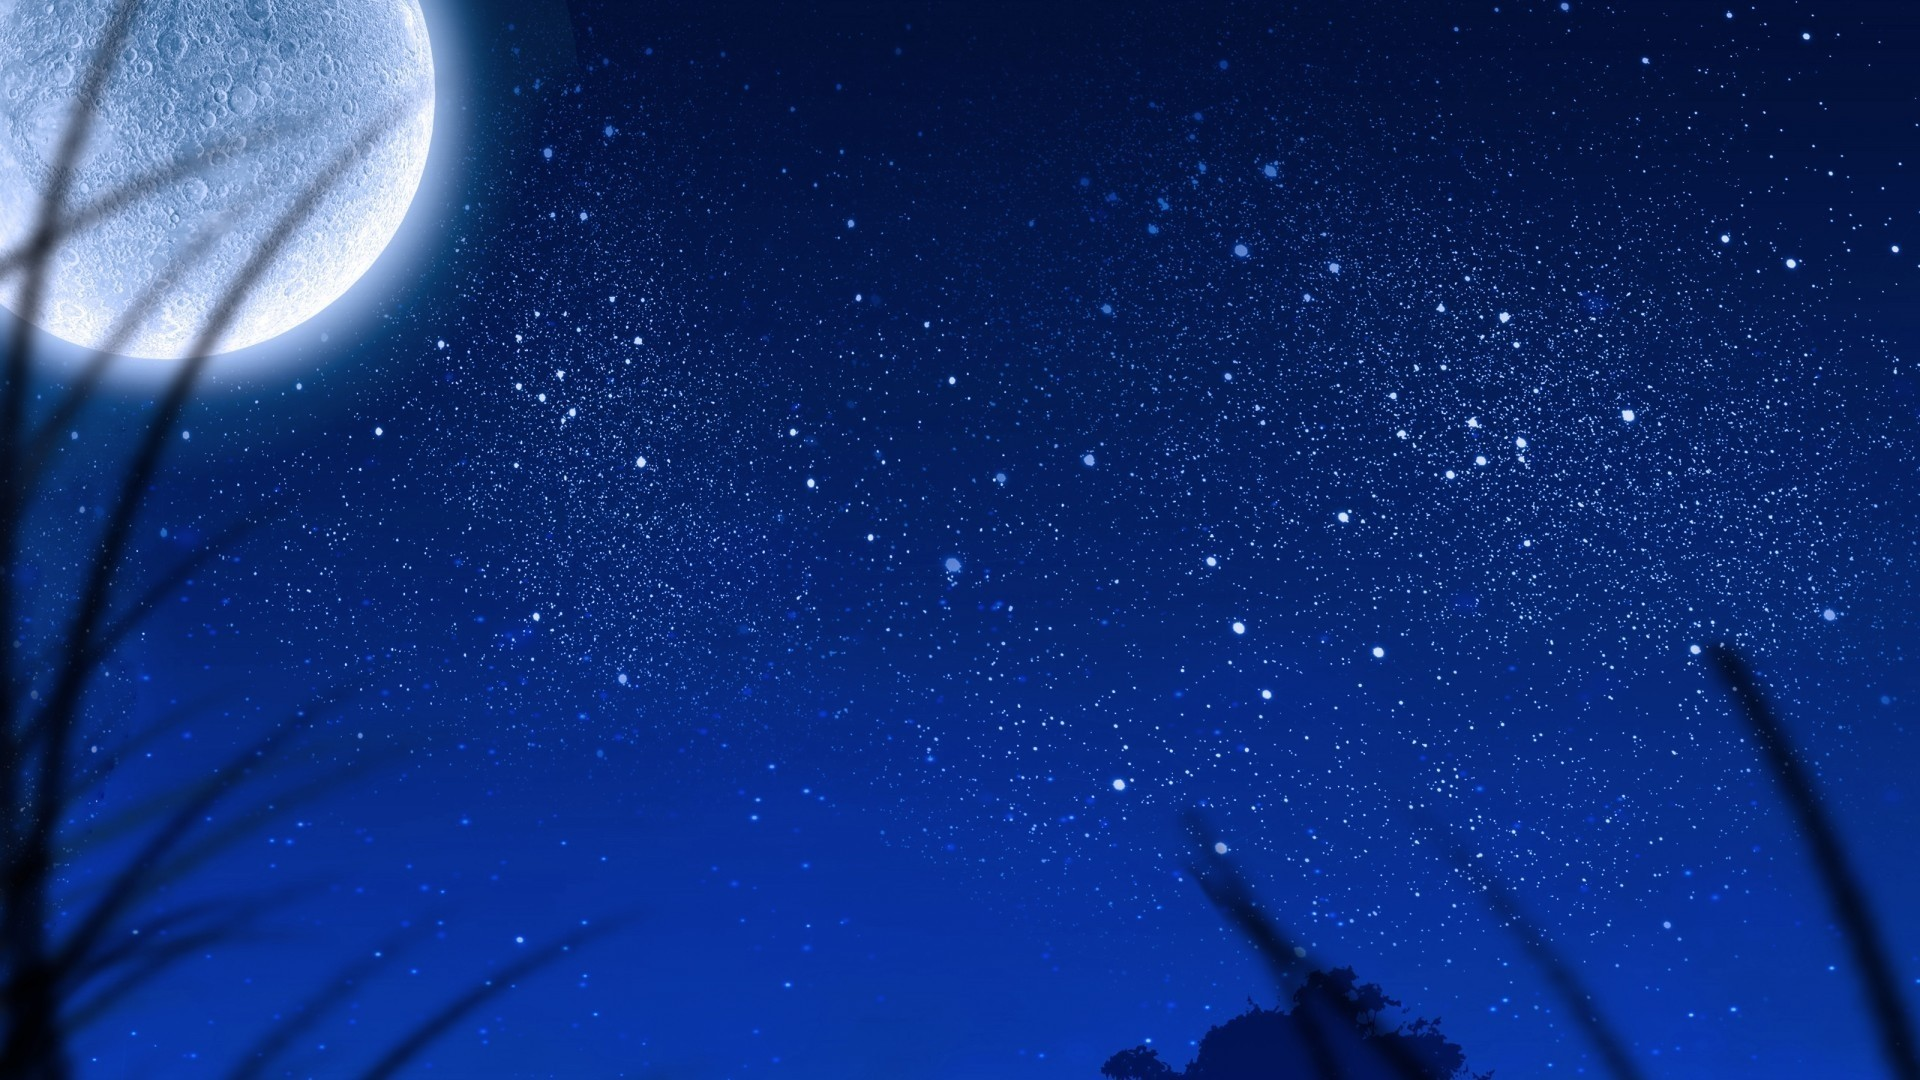 Moon And Stars PC Wallpaper